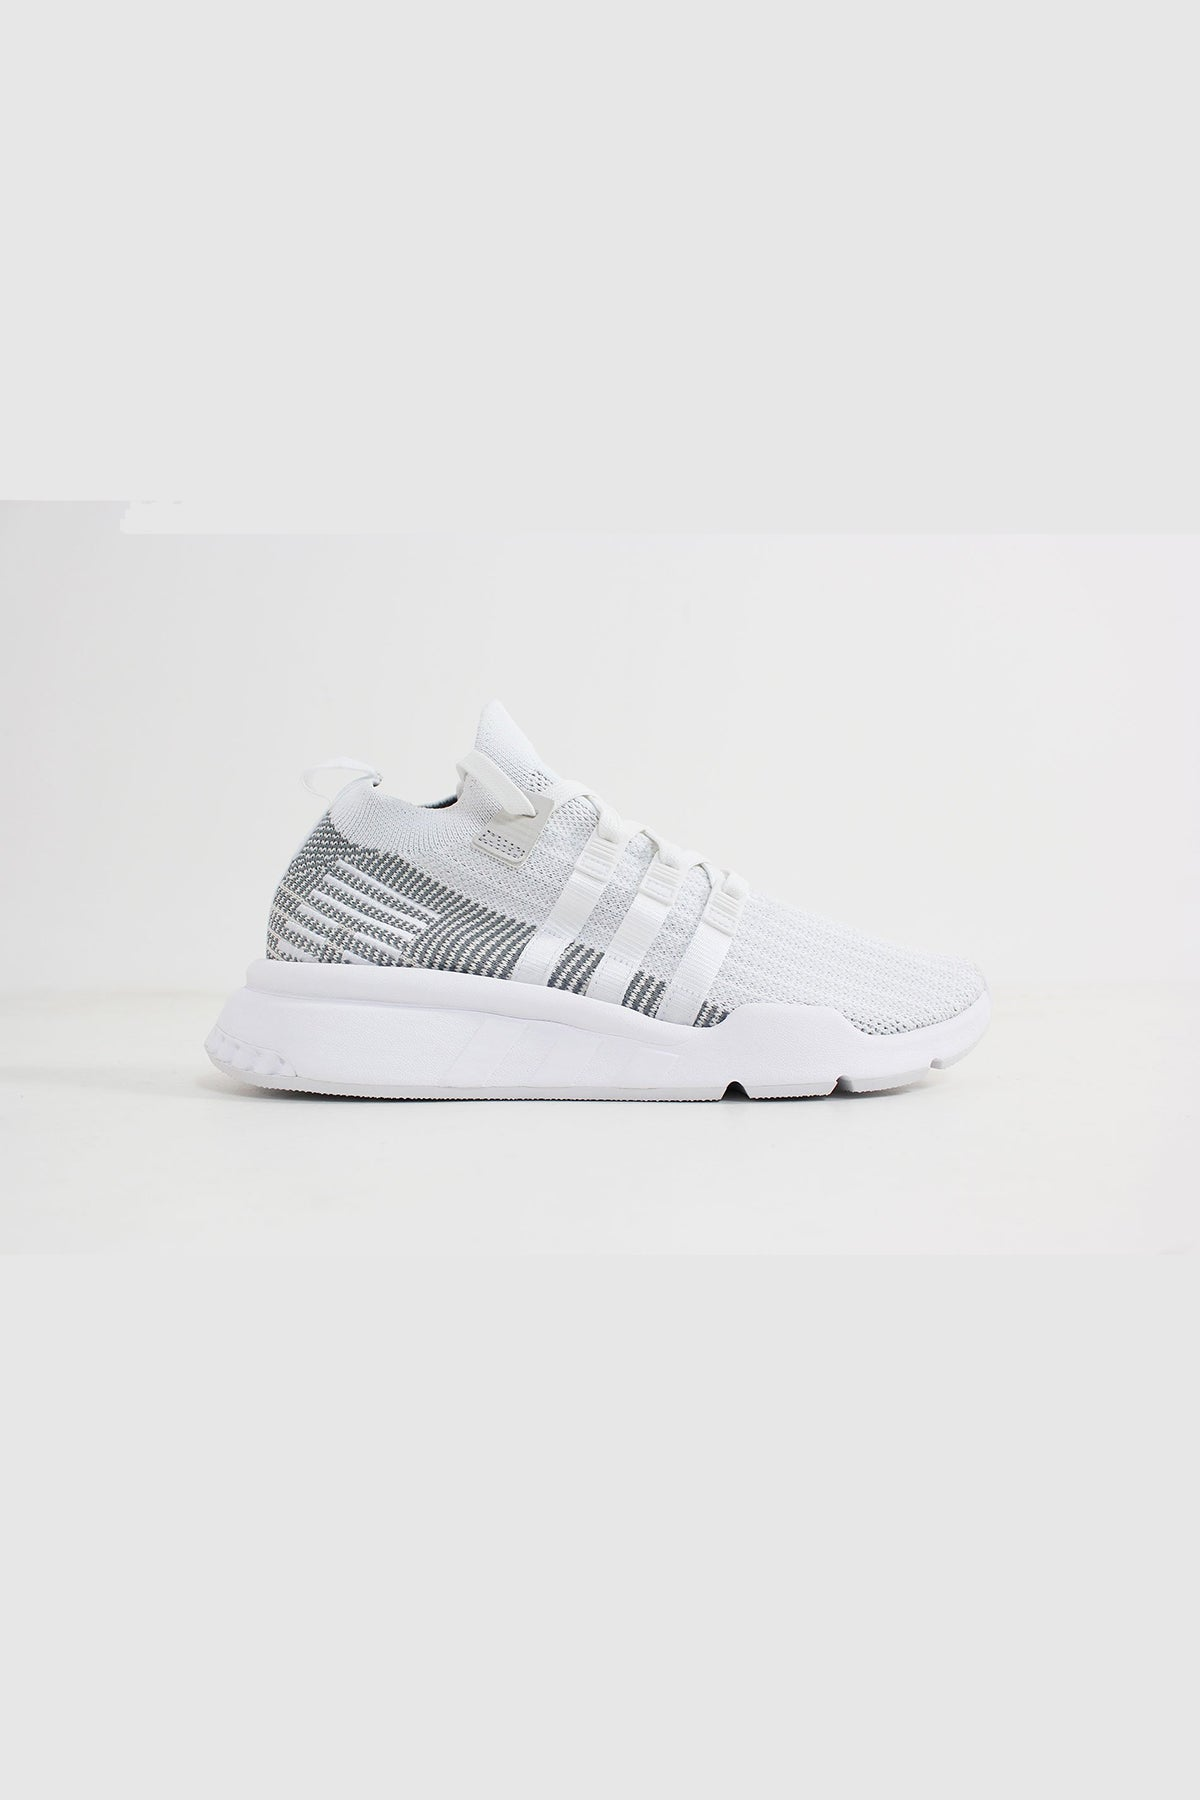 Adidas - EQT Support MID ADV (FTWR White/ FTWR White/ Grey One) CQ2997